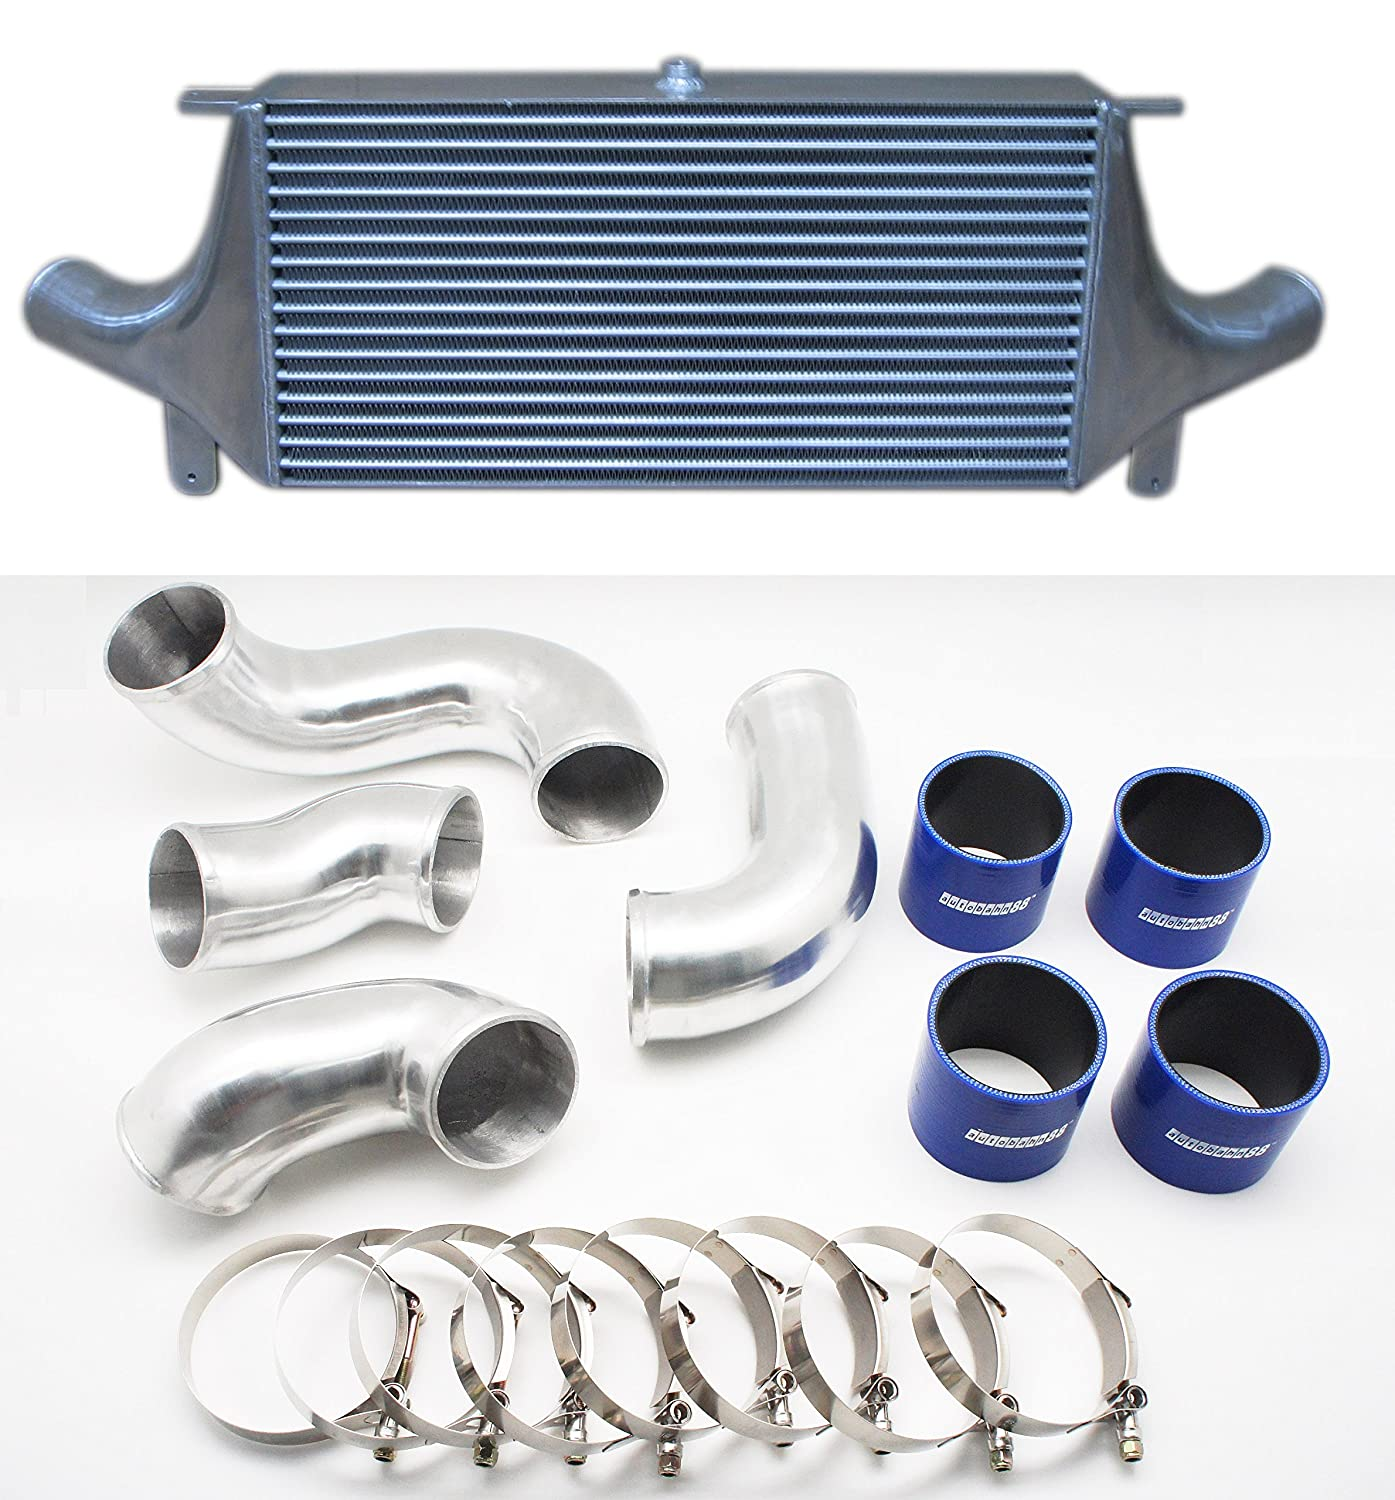 Autobahn88 Universal Front-Mount Intercooler FMIC, Core Size 450x230x66mm (18x9.2x2.6'), Inlet Outlet 64mm (2.5') Core Size 450x230x66mm (18x9.2x2.6) Inlet Outlet 64mm (2.5)